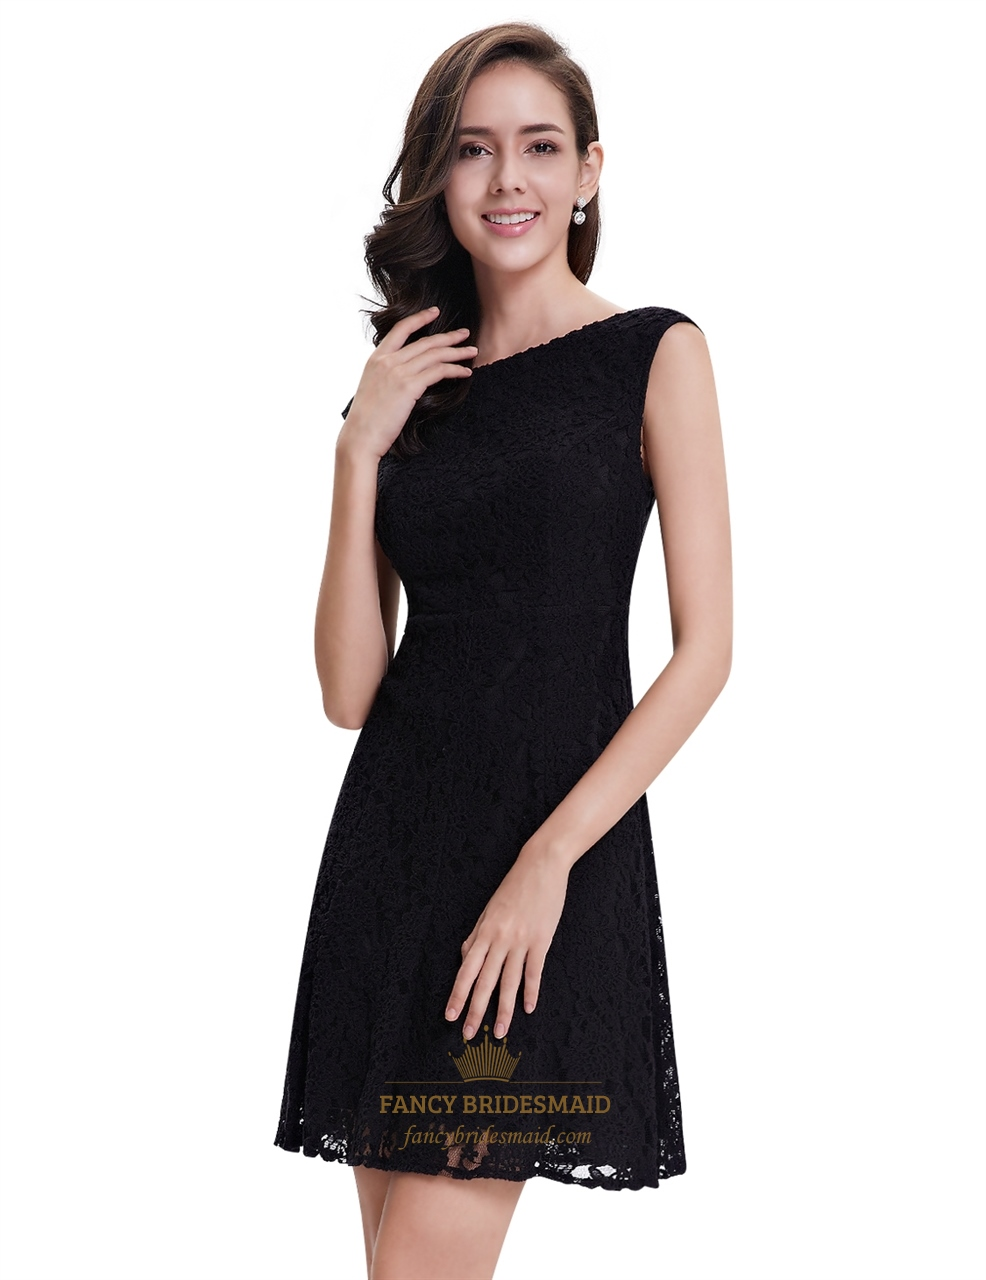 0007147_elegant_black_lace_short_semi_formal_dresses_with_cap_sleeves_wm